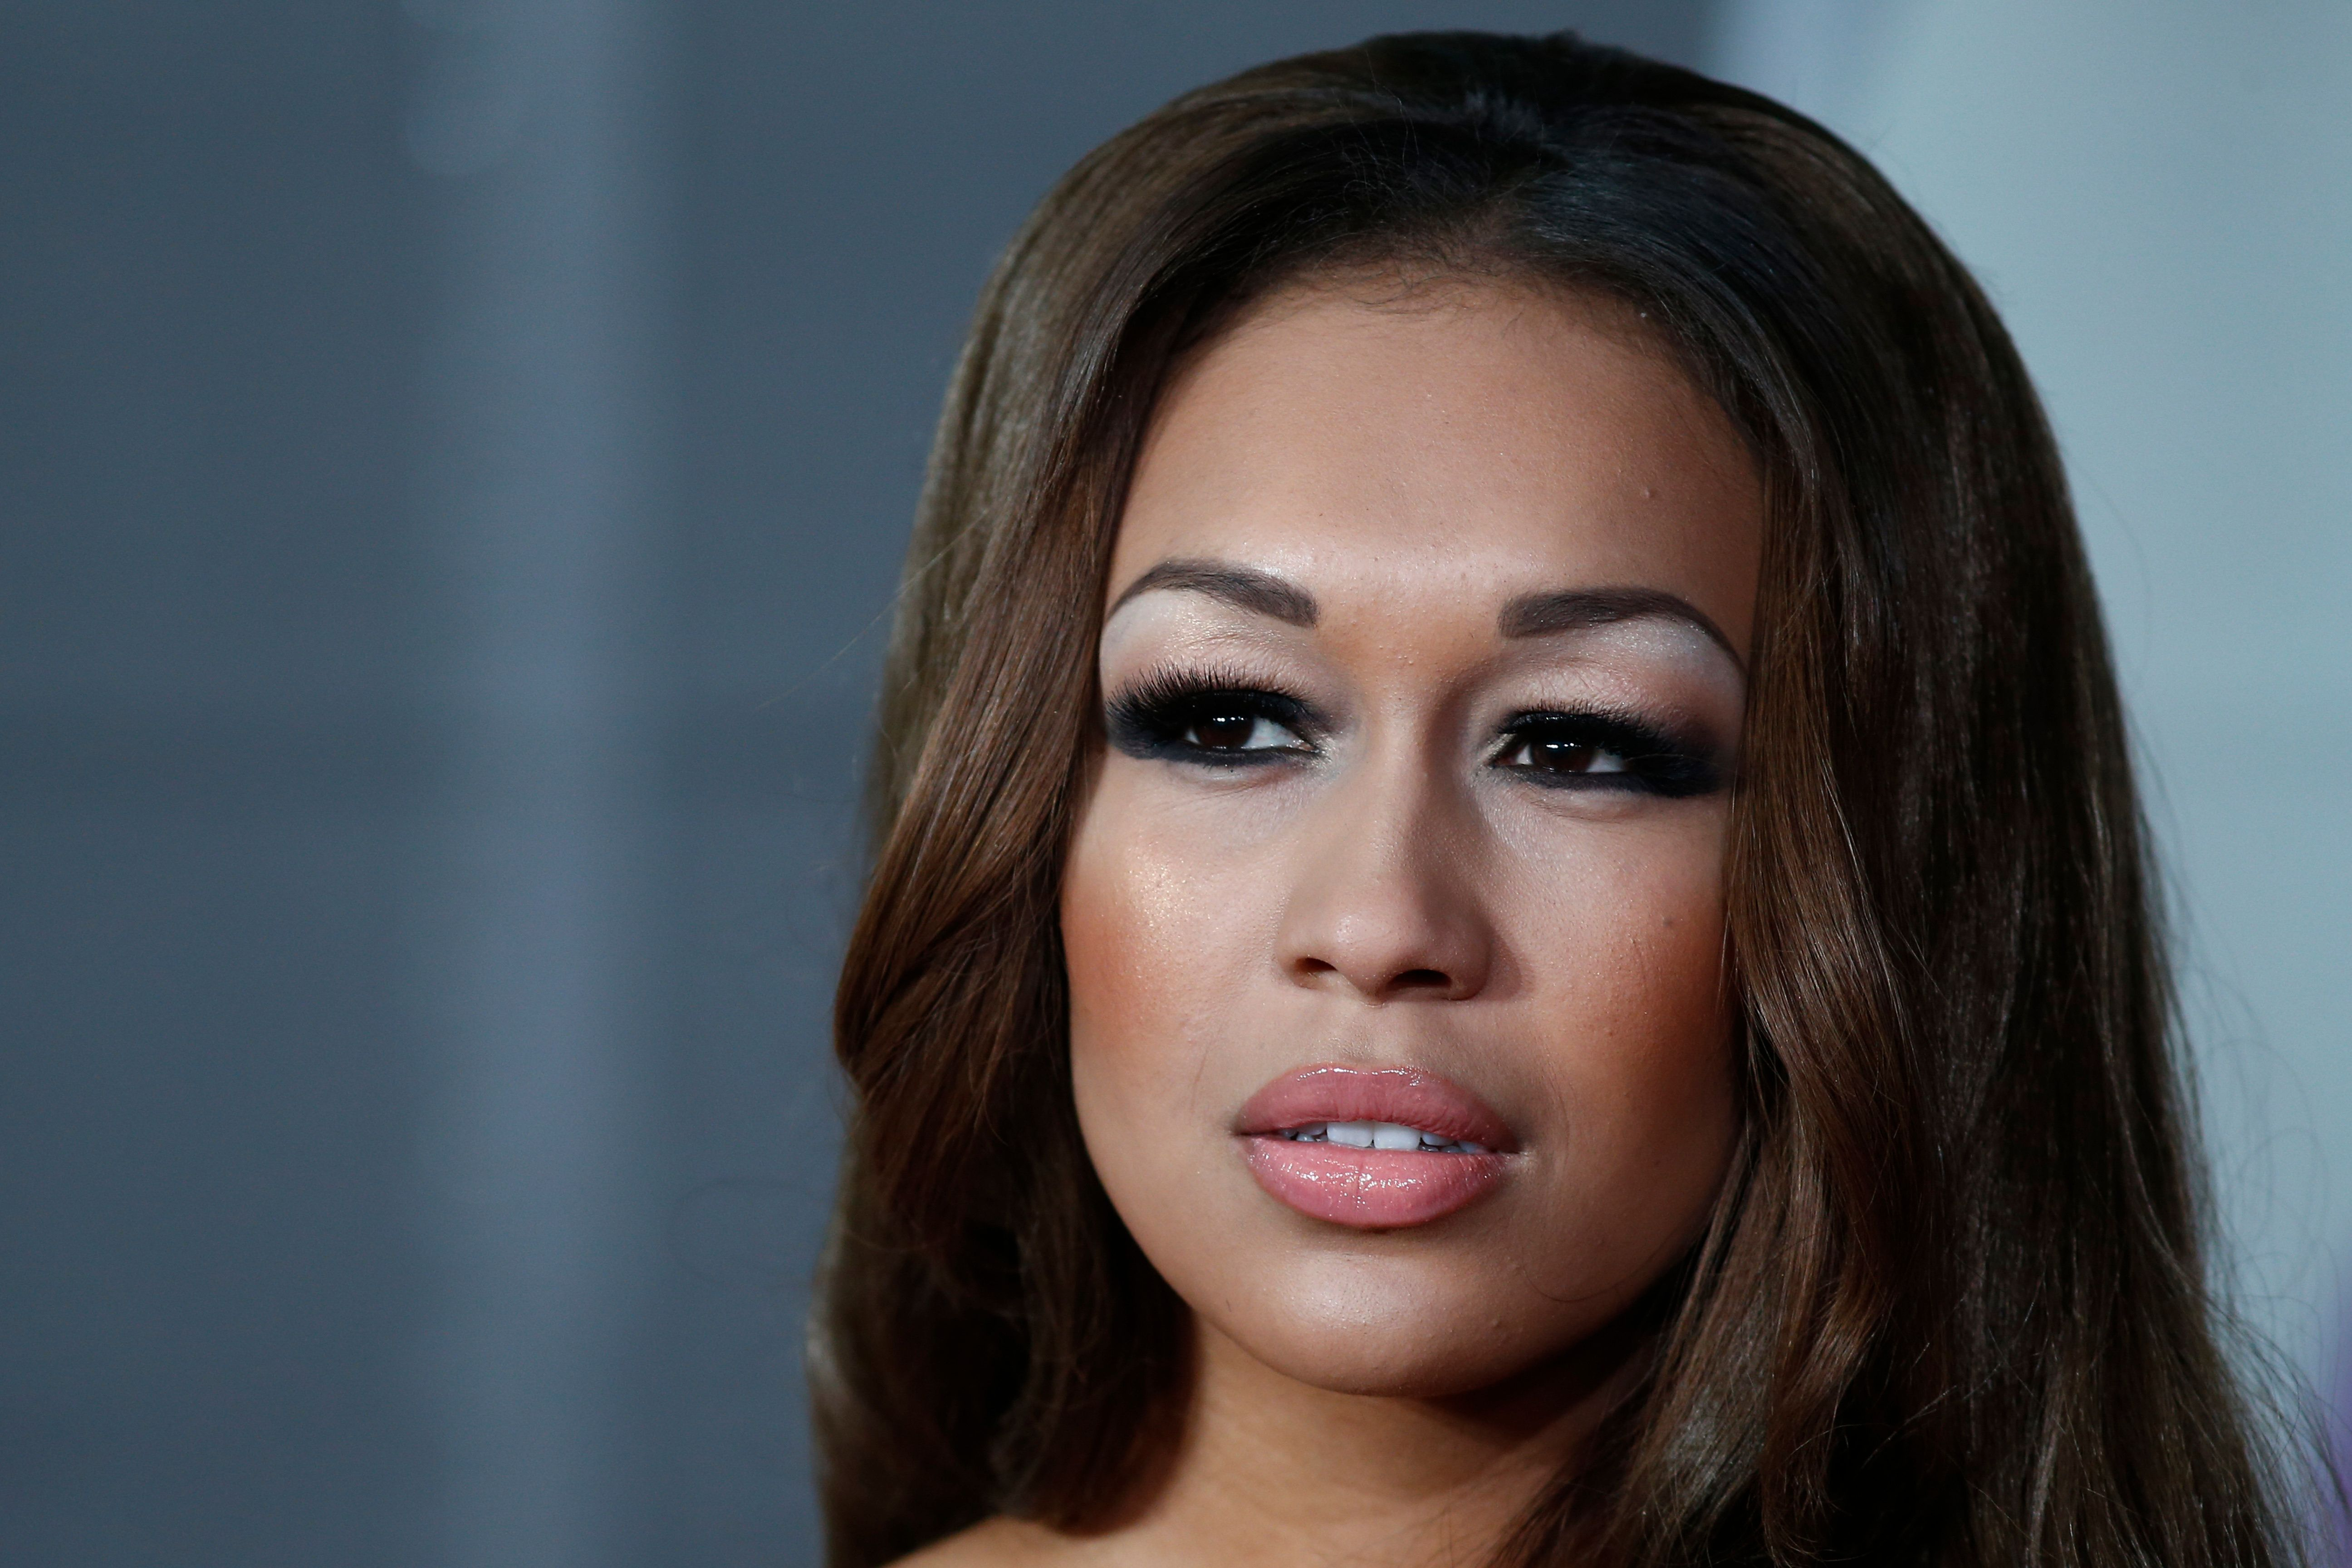 Former 'X Factor' Finalist Rebecca Ferguson Pens Candid Open Letter About Music Industry